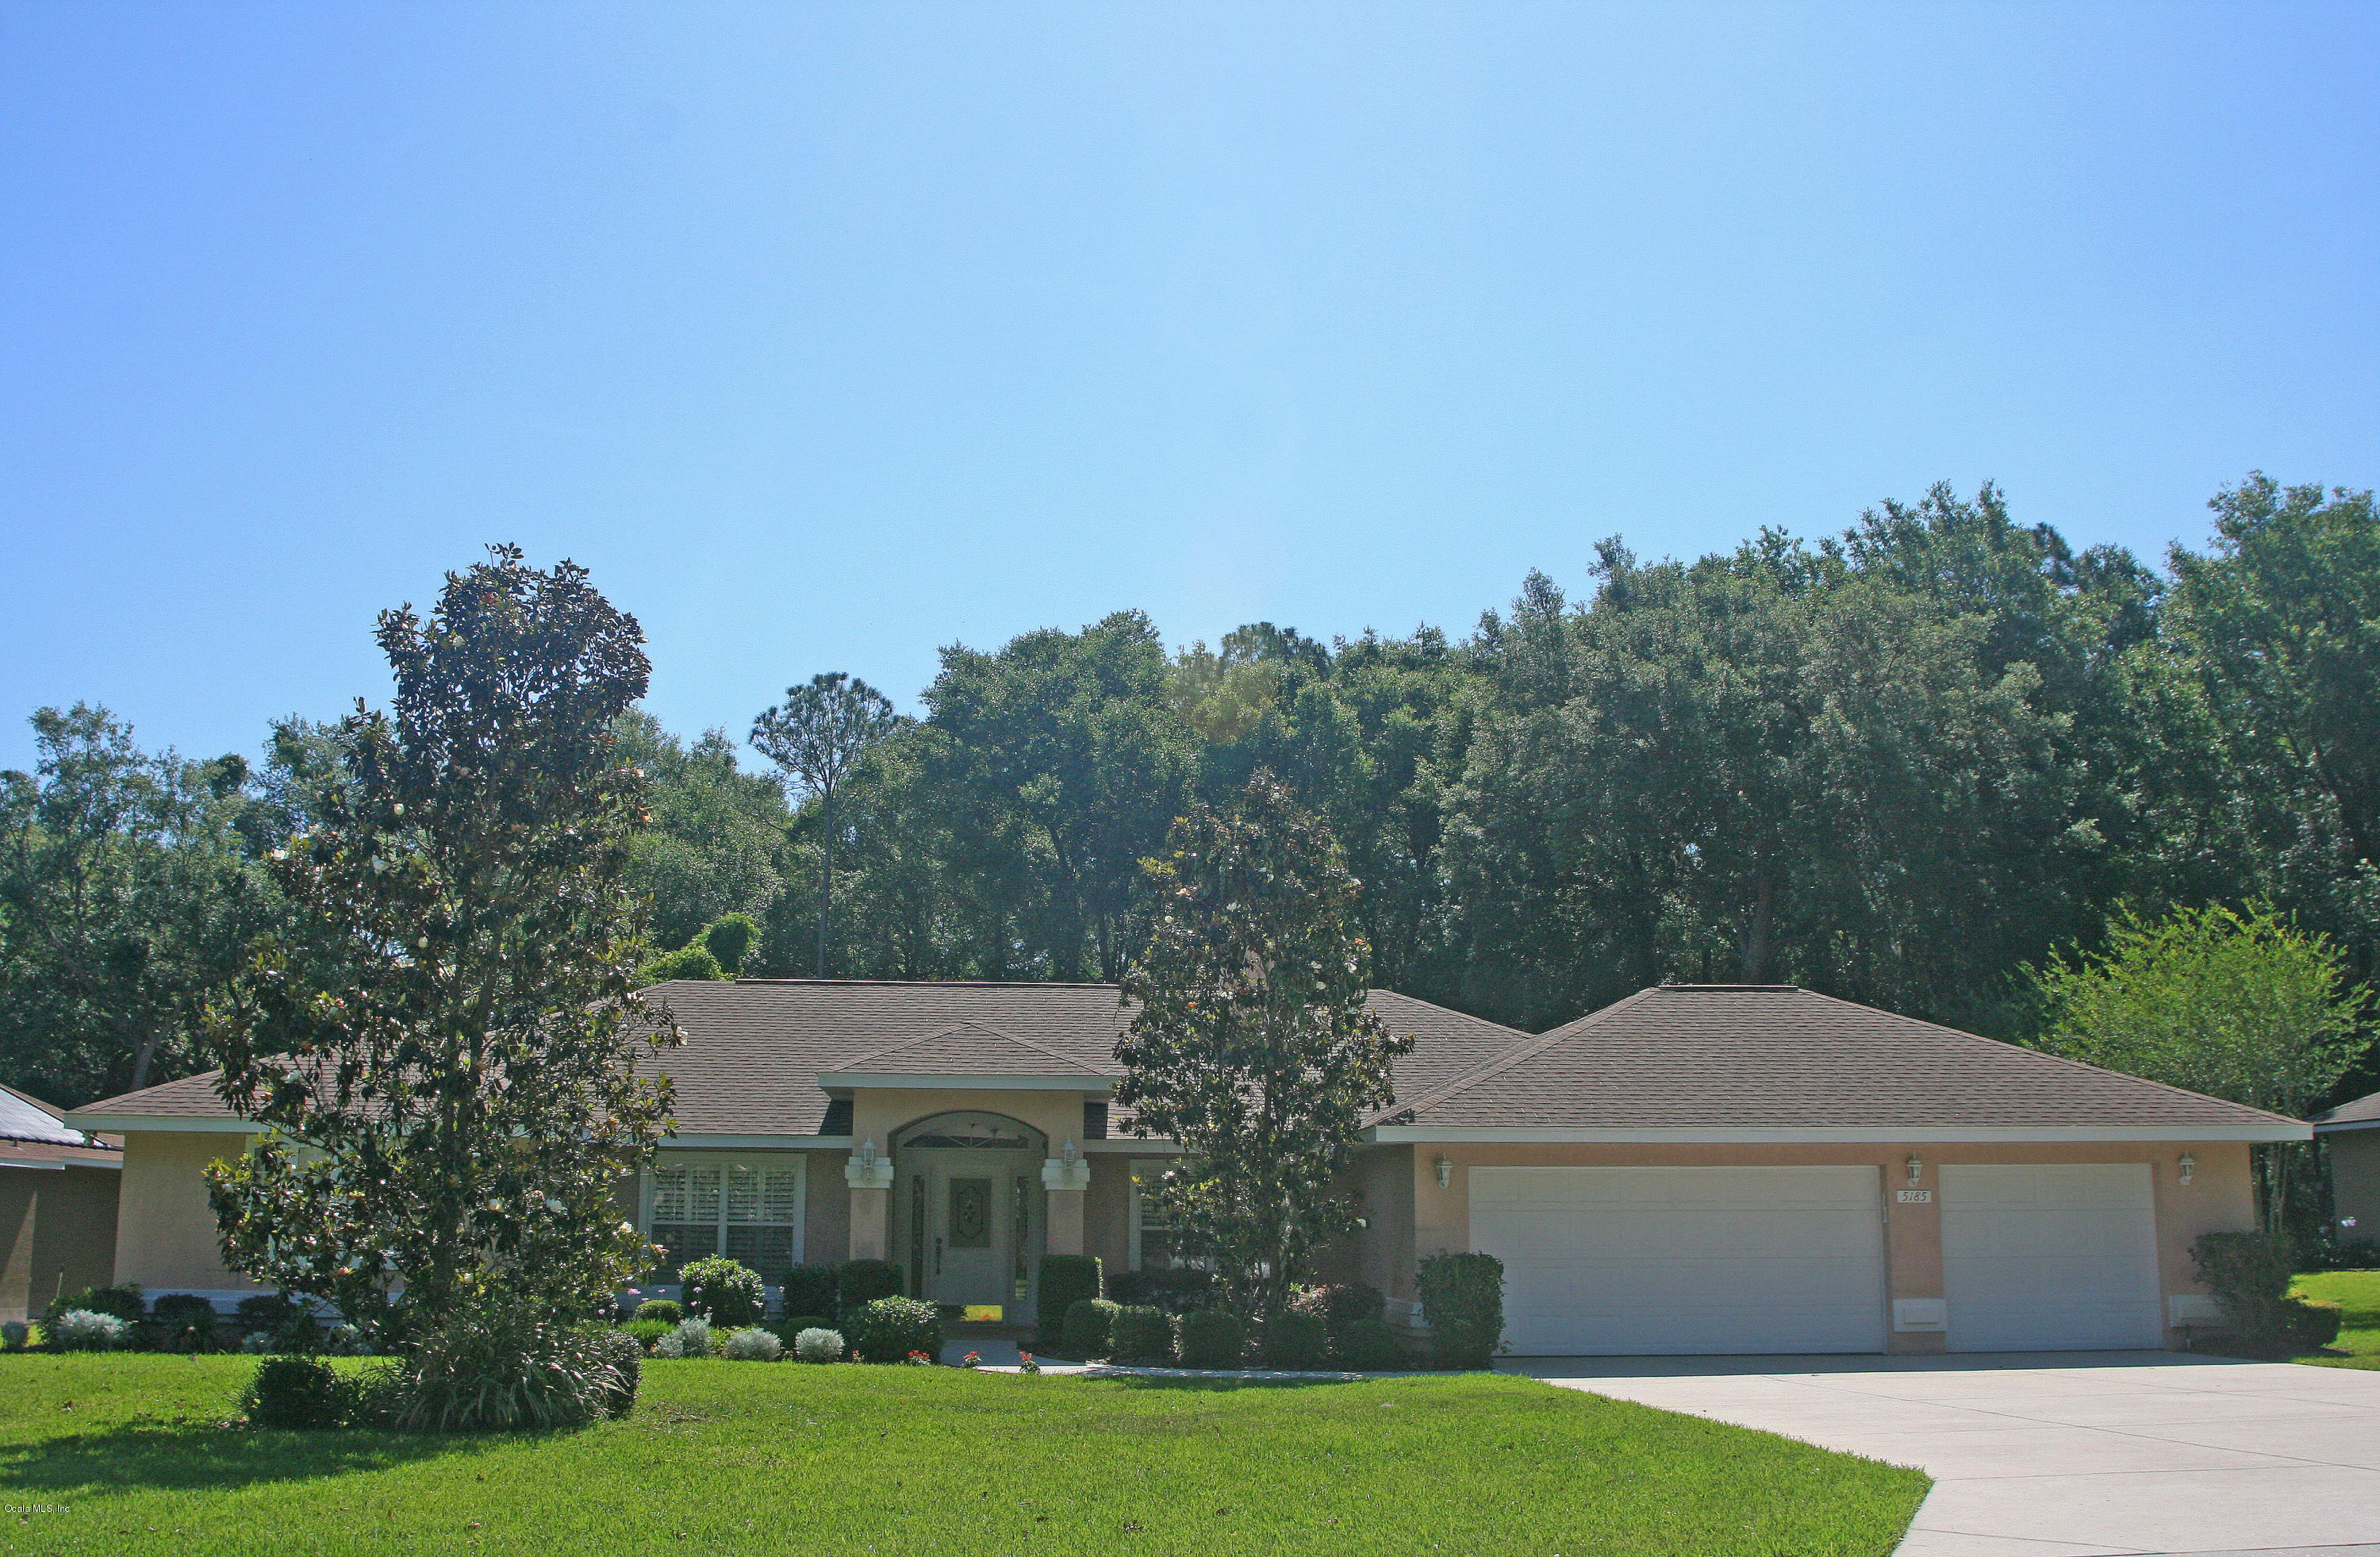 5185 SE 44TH CIRCLE, OCALA, FL 34480